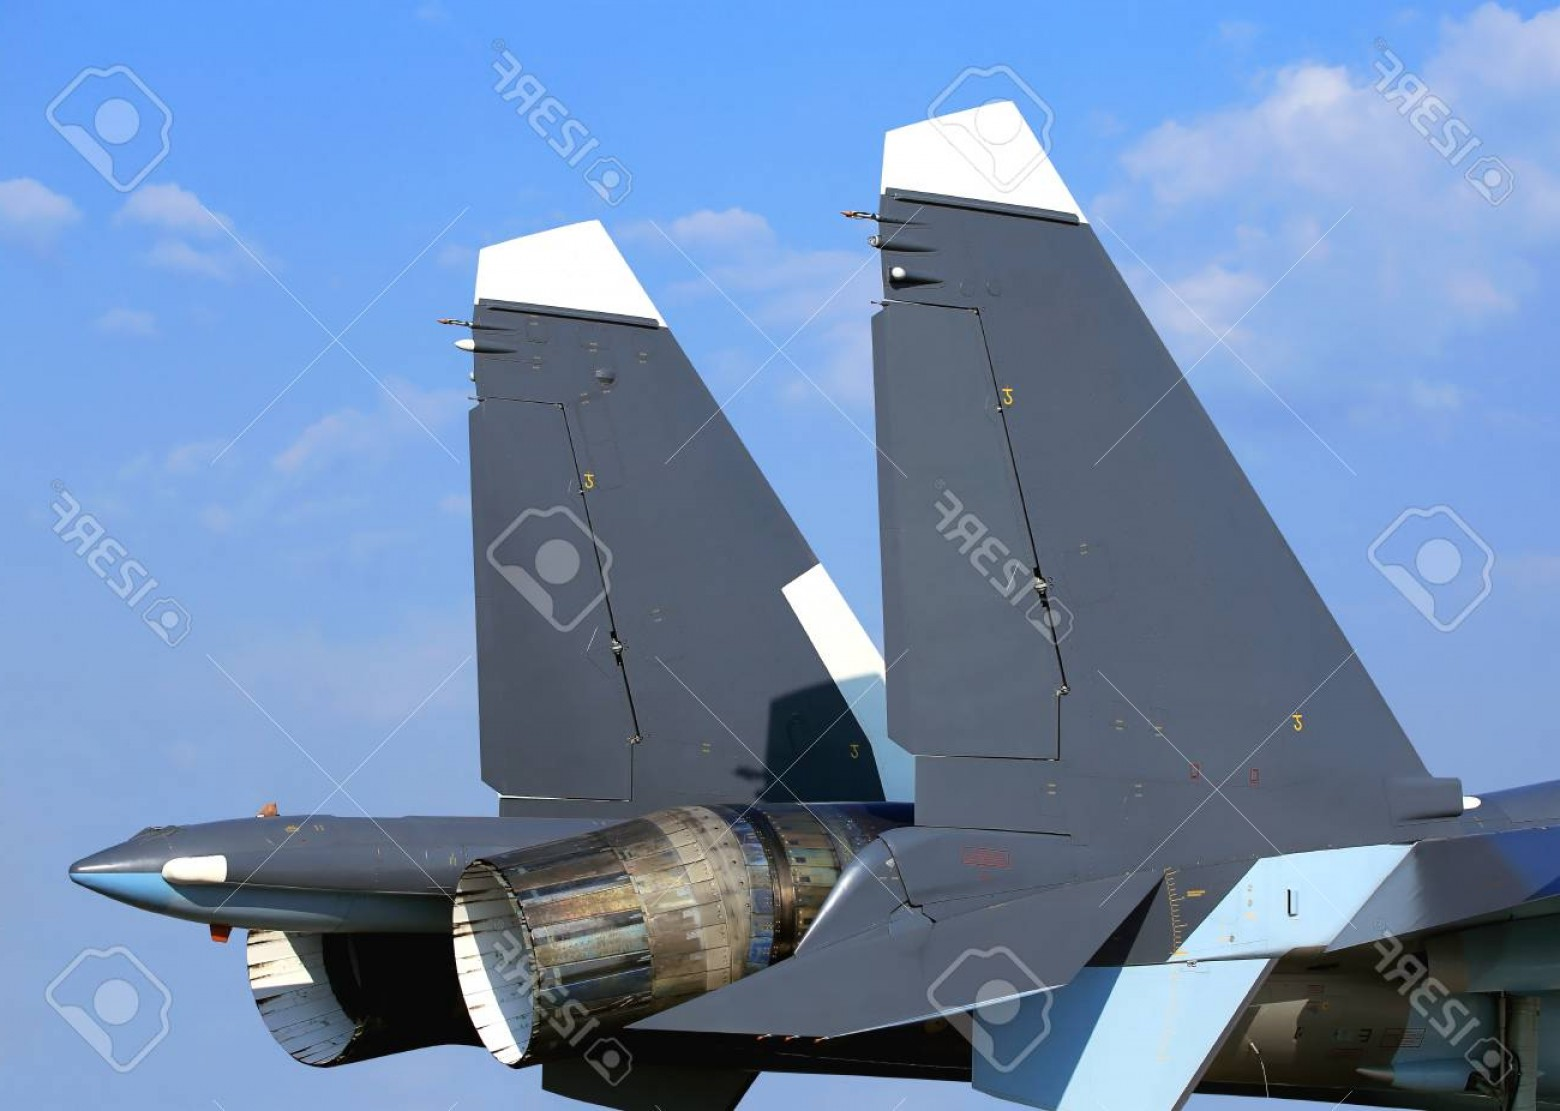 Thrust Vector Control: Photoback Of The Fighter With The Adjustable Jet Nozzle With Thrust Vector Control